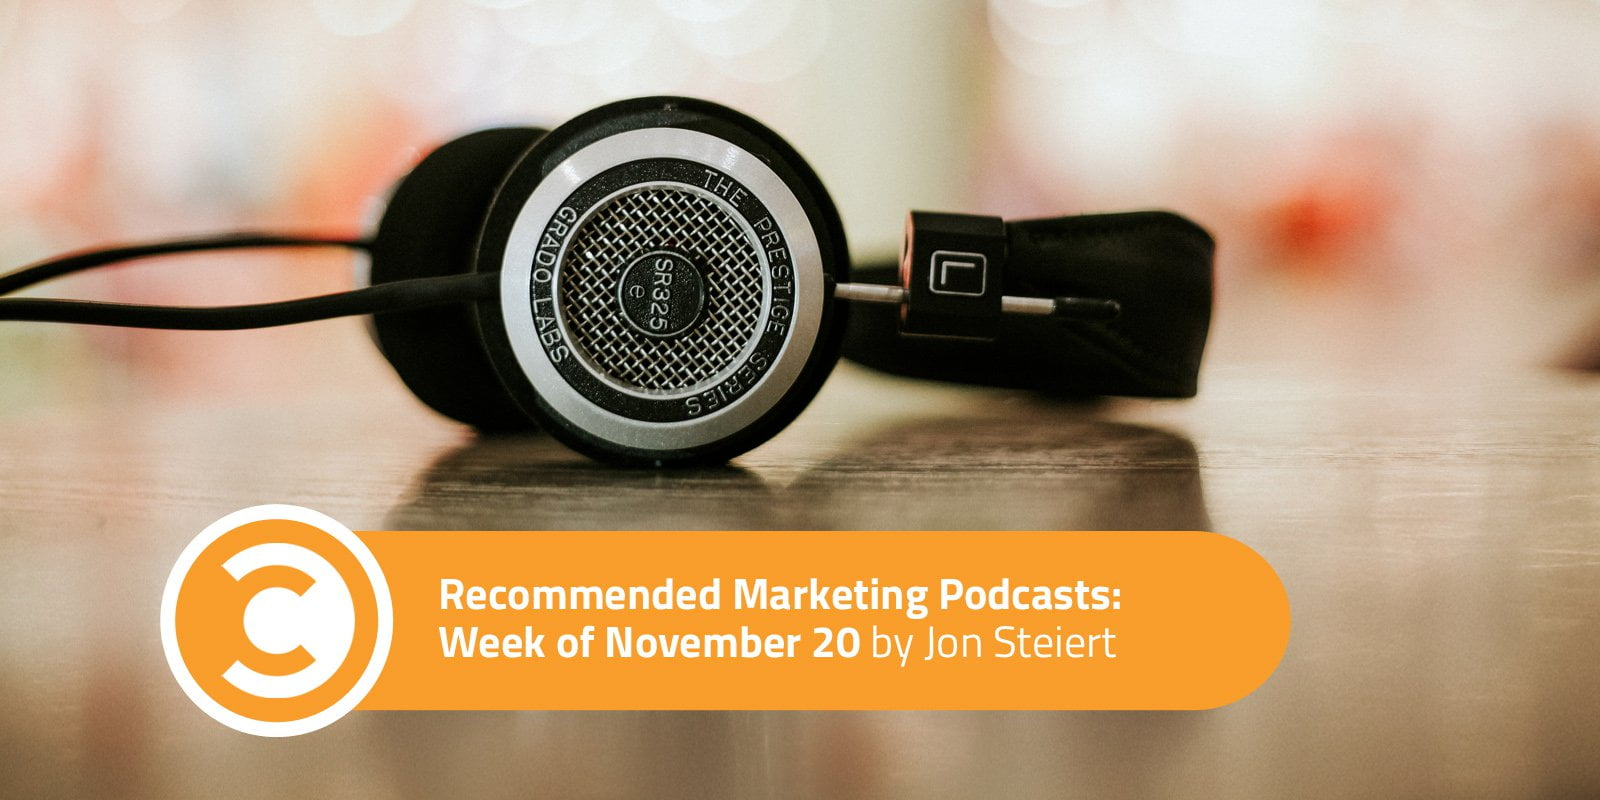 Recommended Marketing Podcasts: Week of November 20